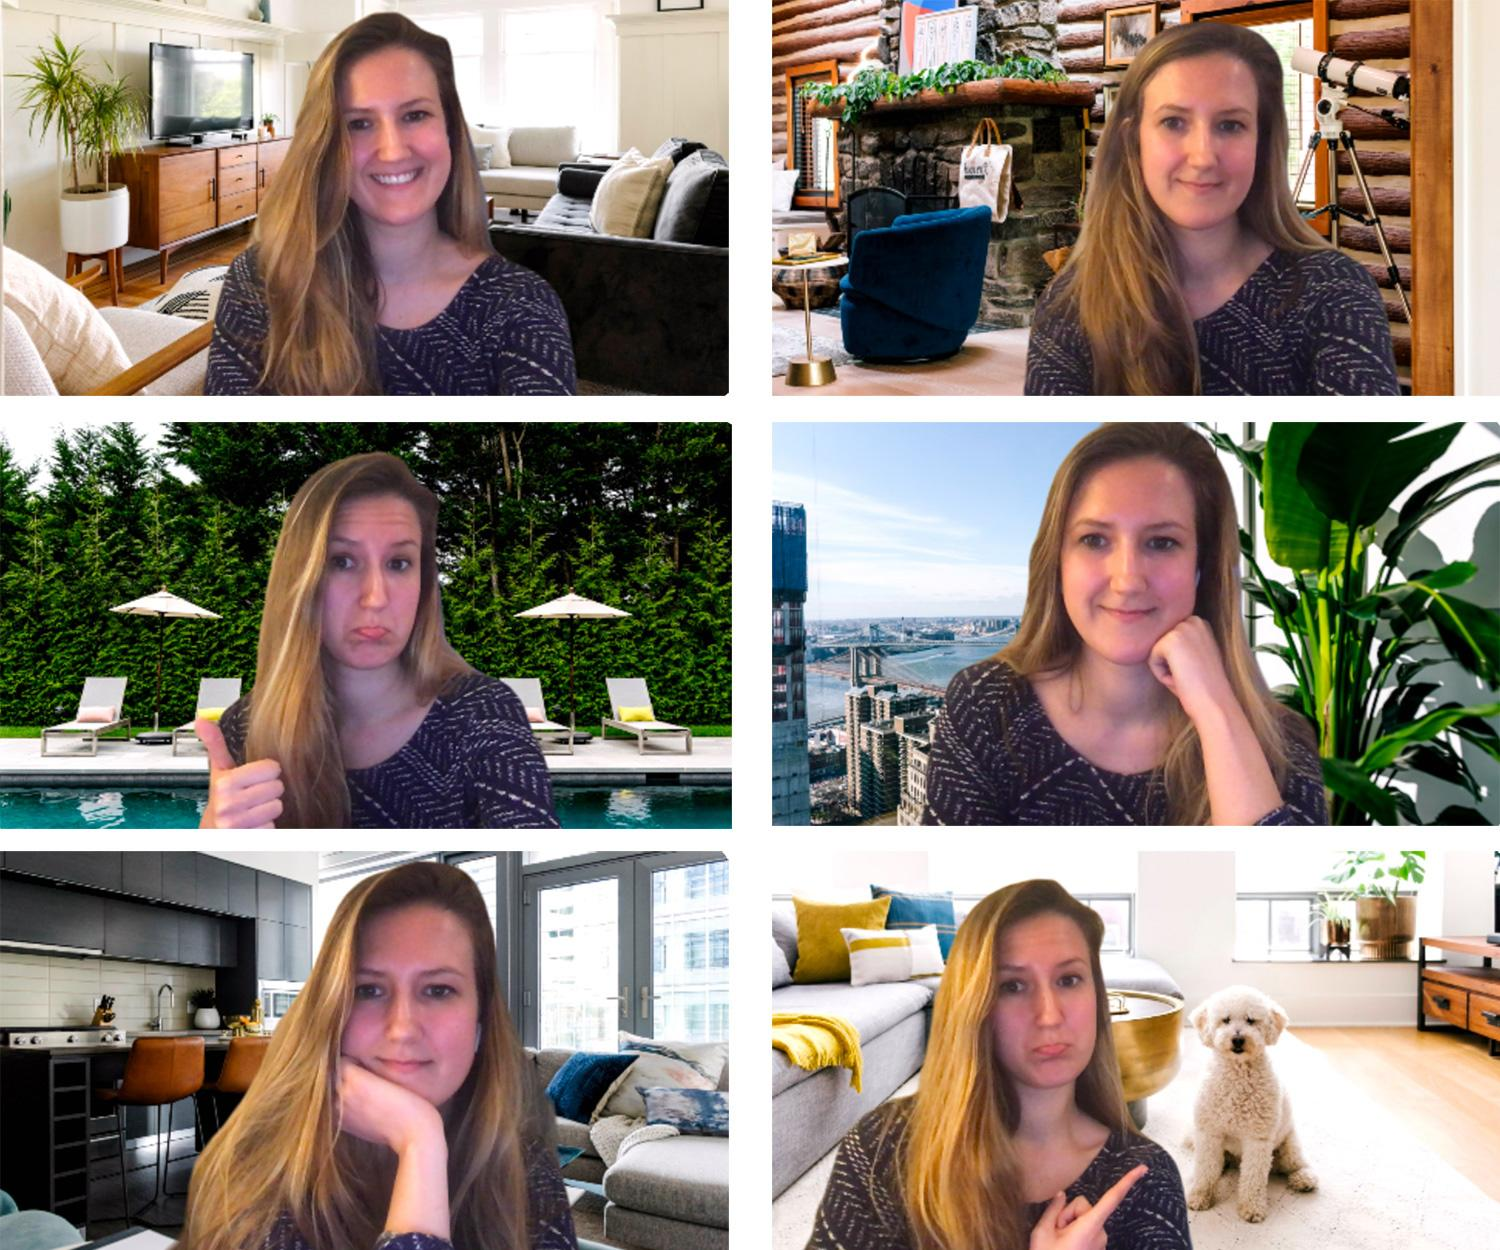 The Best Zoom Backgrounds For Every Type Of Video Call